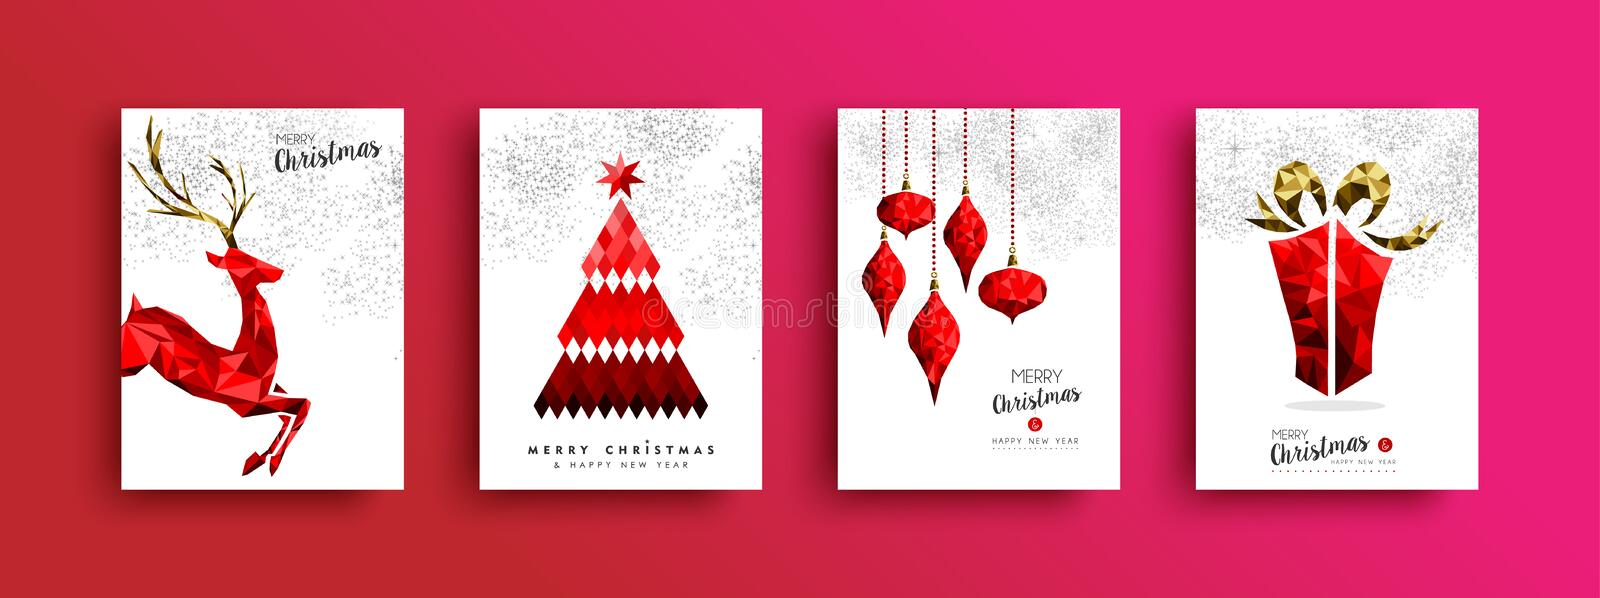 Christmas and New Year red low poly card set. Red Merry Christmas greeting card set. Xmas pine tree reindeer and gift box illustration in low poly style on sky royalty free illustration